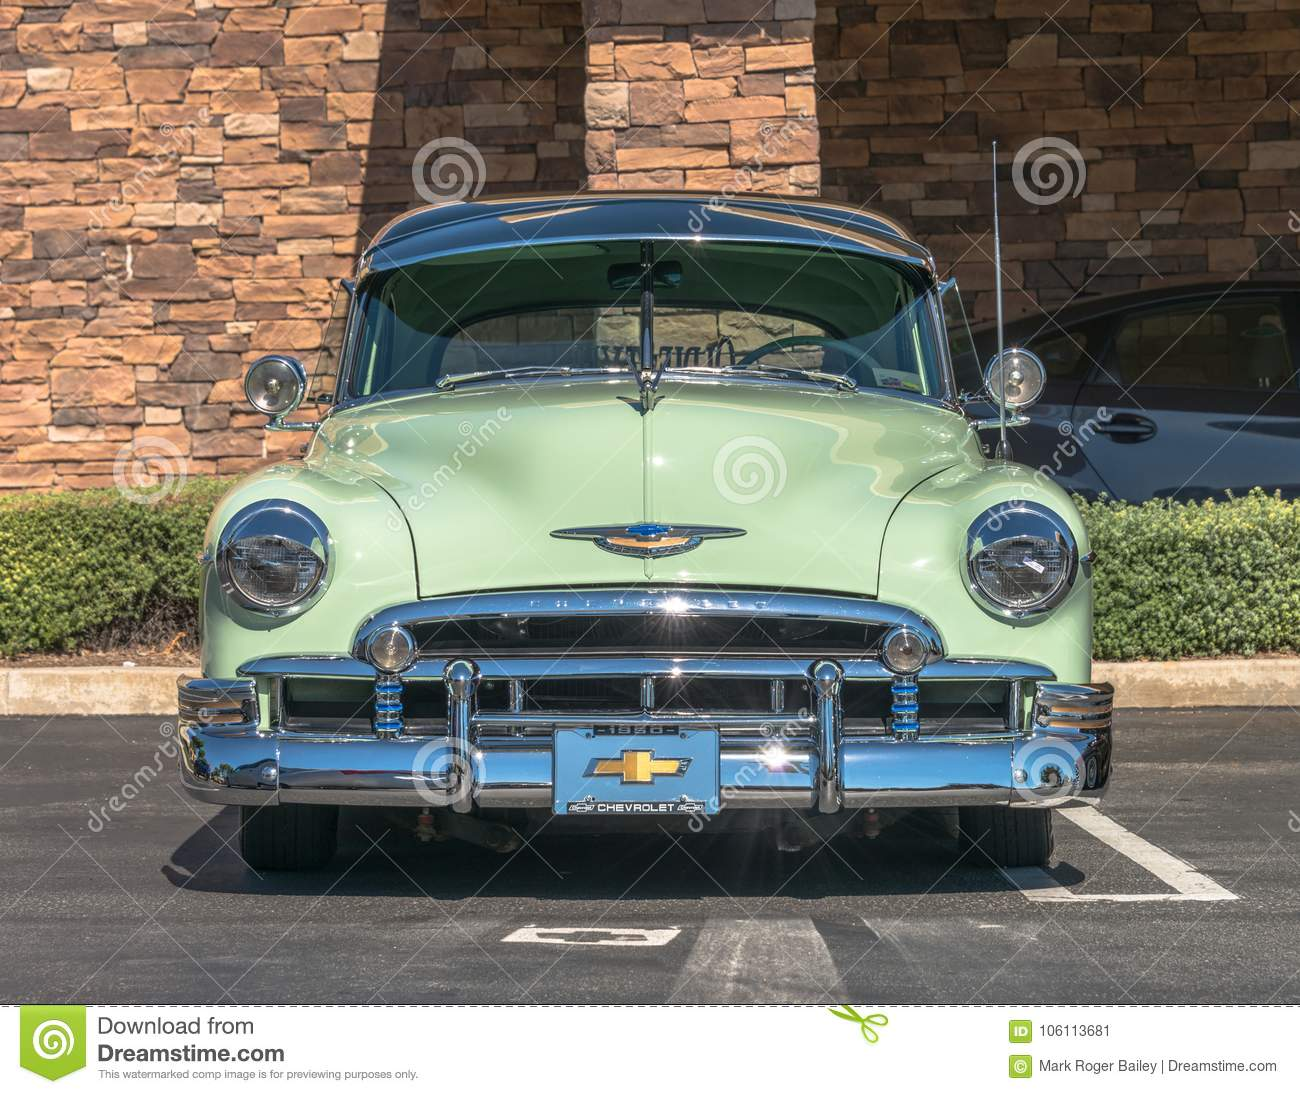 hight resolution of upland united states of america july 29 2017 1950 mist green chevrolet appears in spontaneous classic car show in suburban parking lot